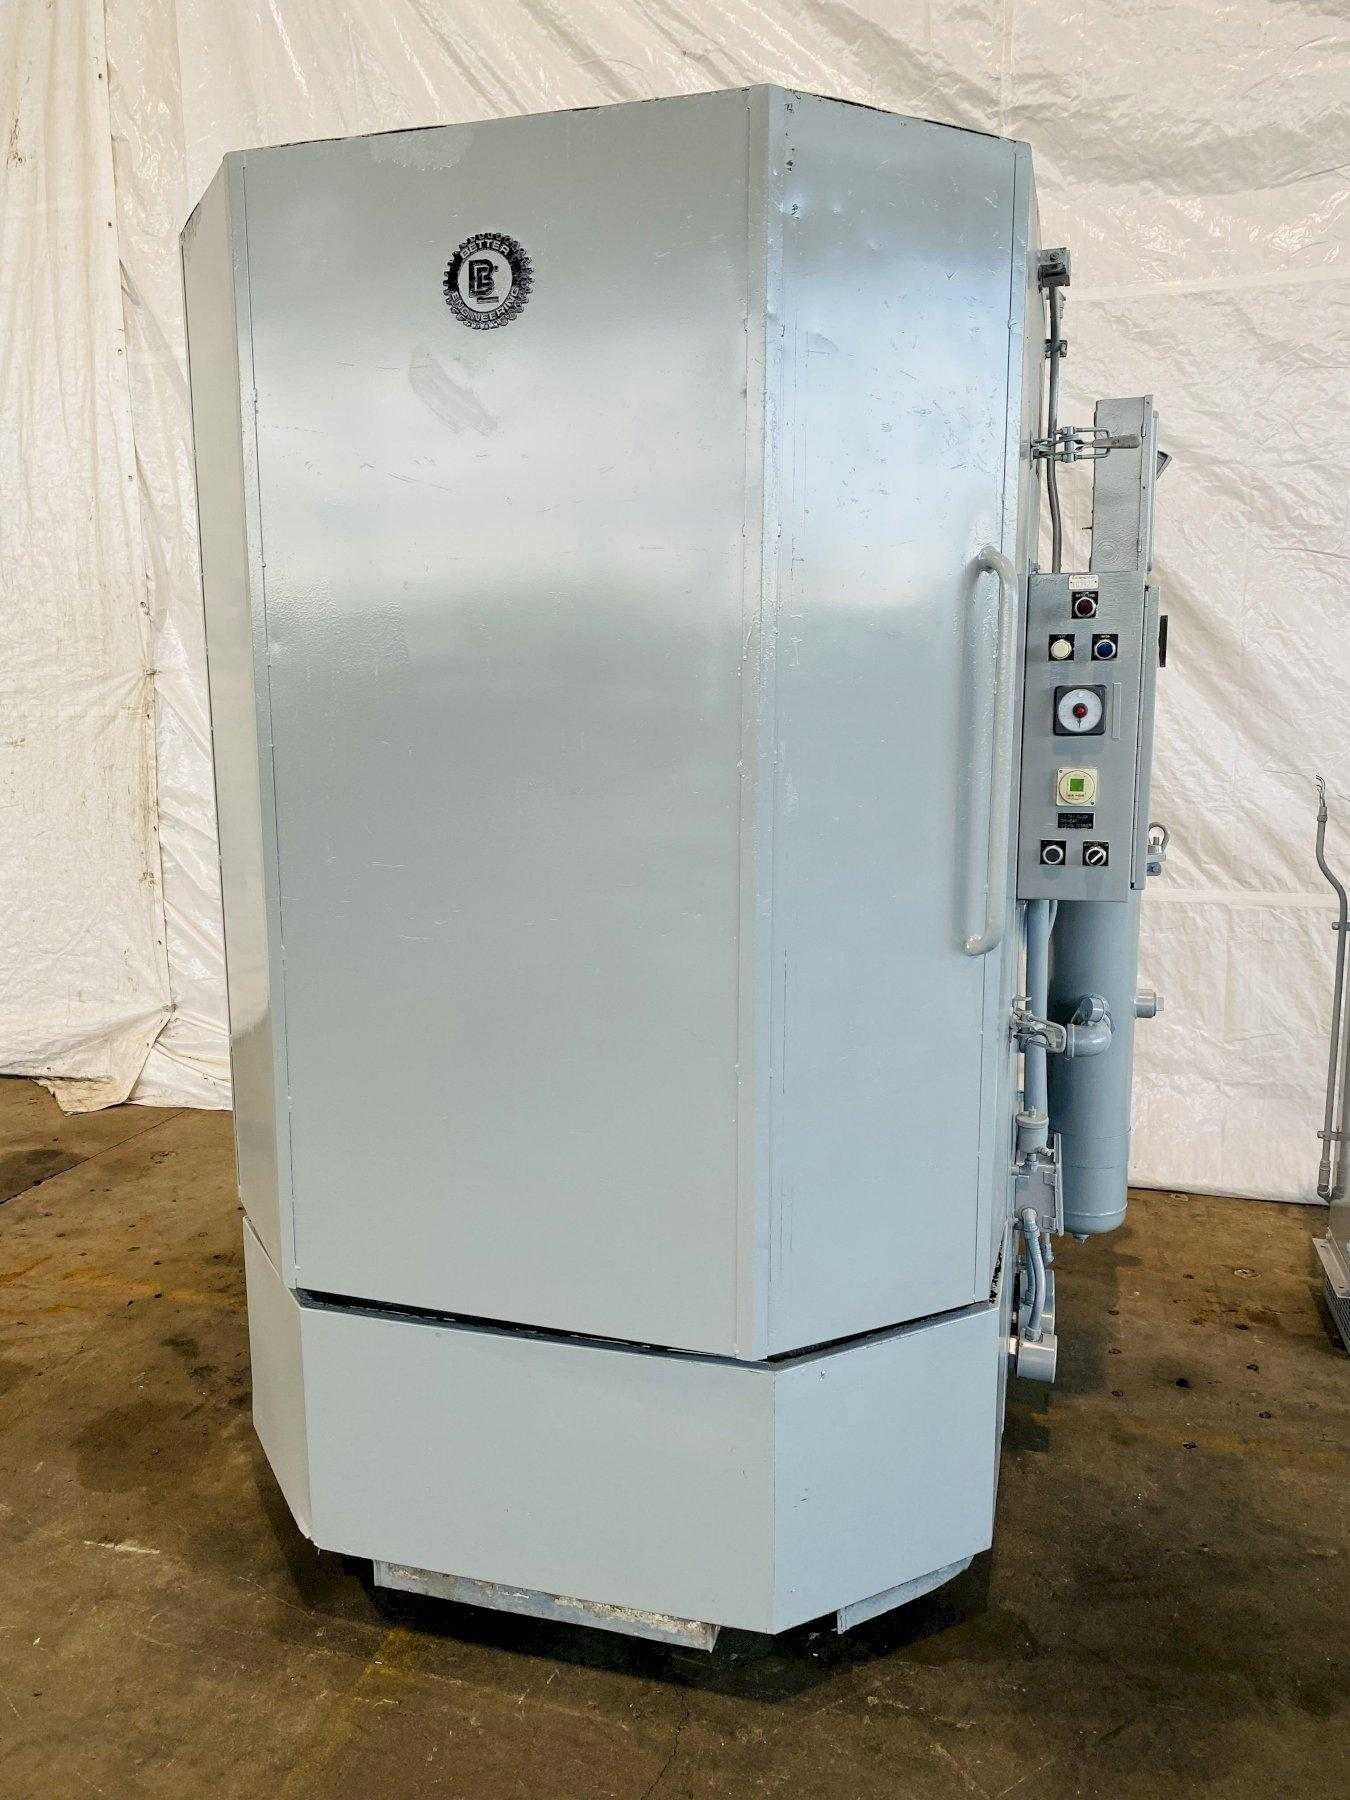 BETTER ENGINEERING MODEL #400LXP ROTARY TABLE PARTS WASHER. STOCK # 0525021